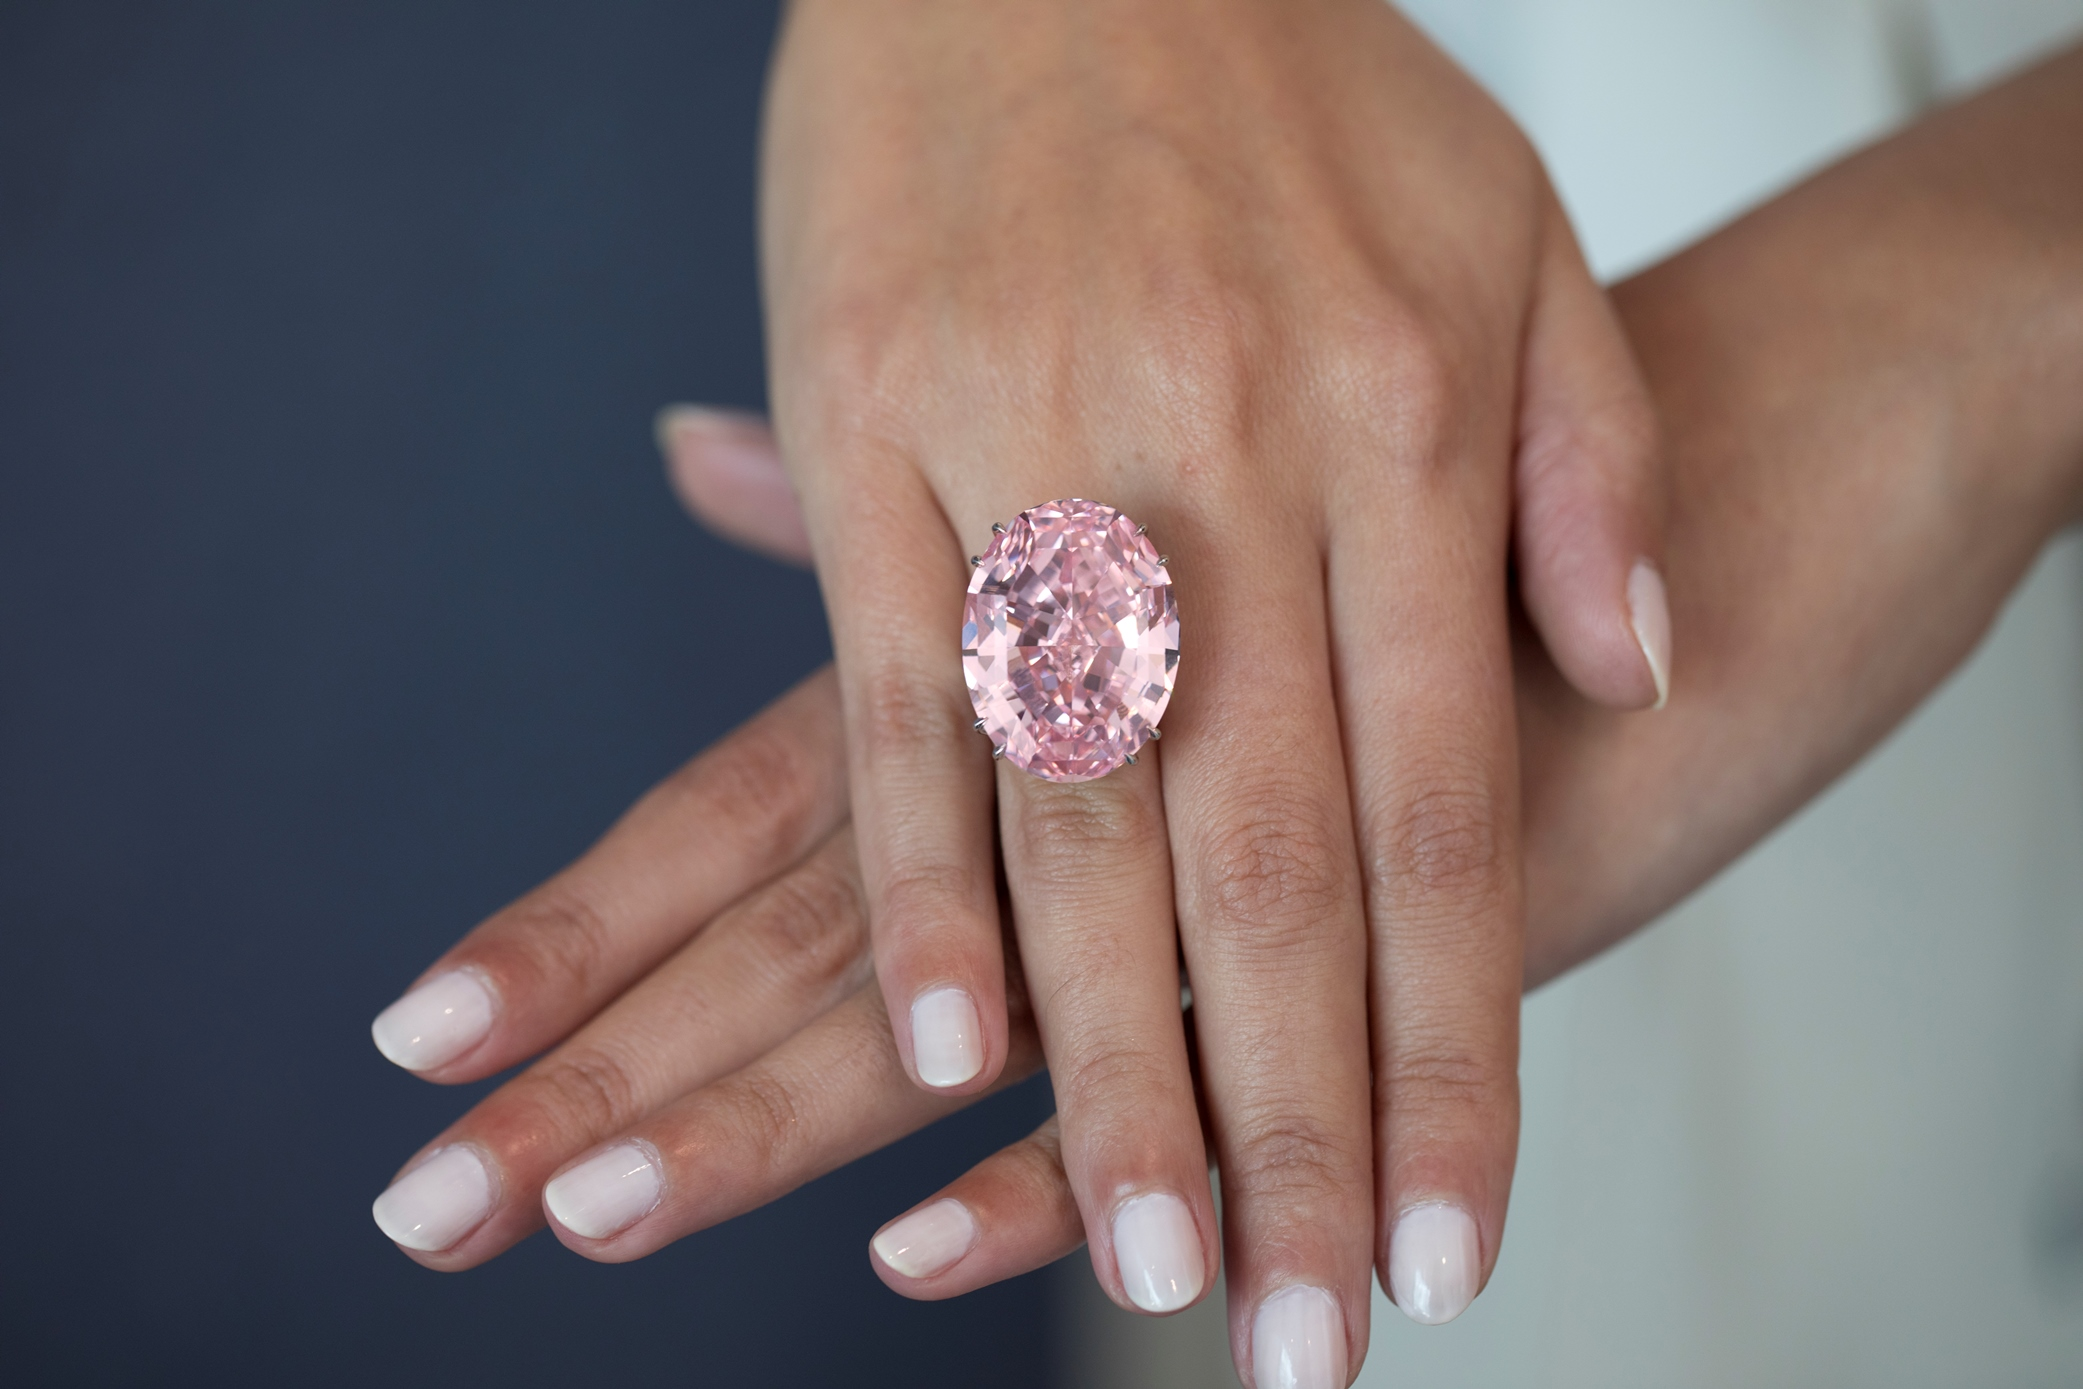 the pink star world's most expensive diamond